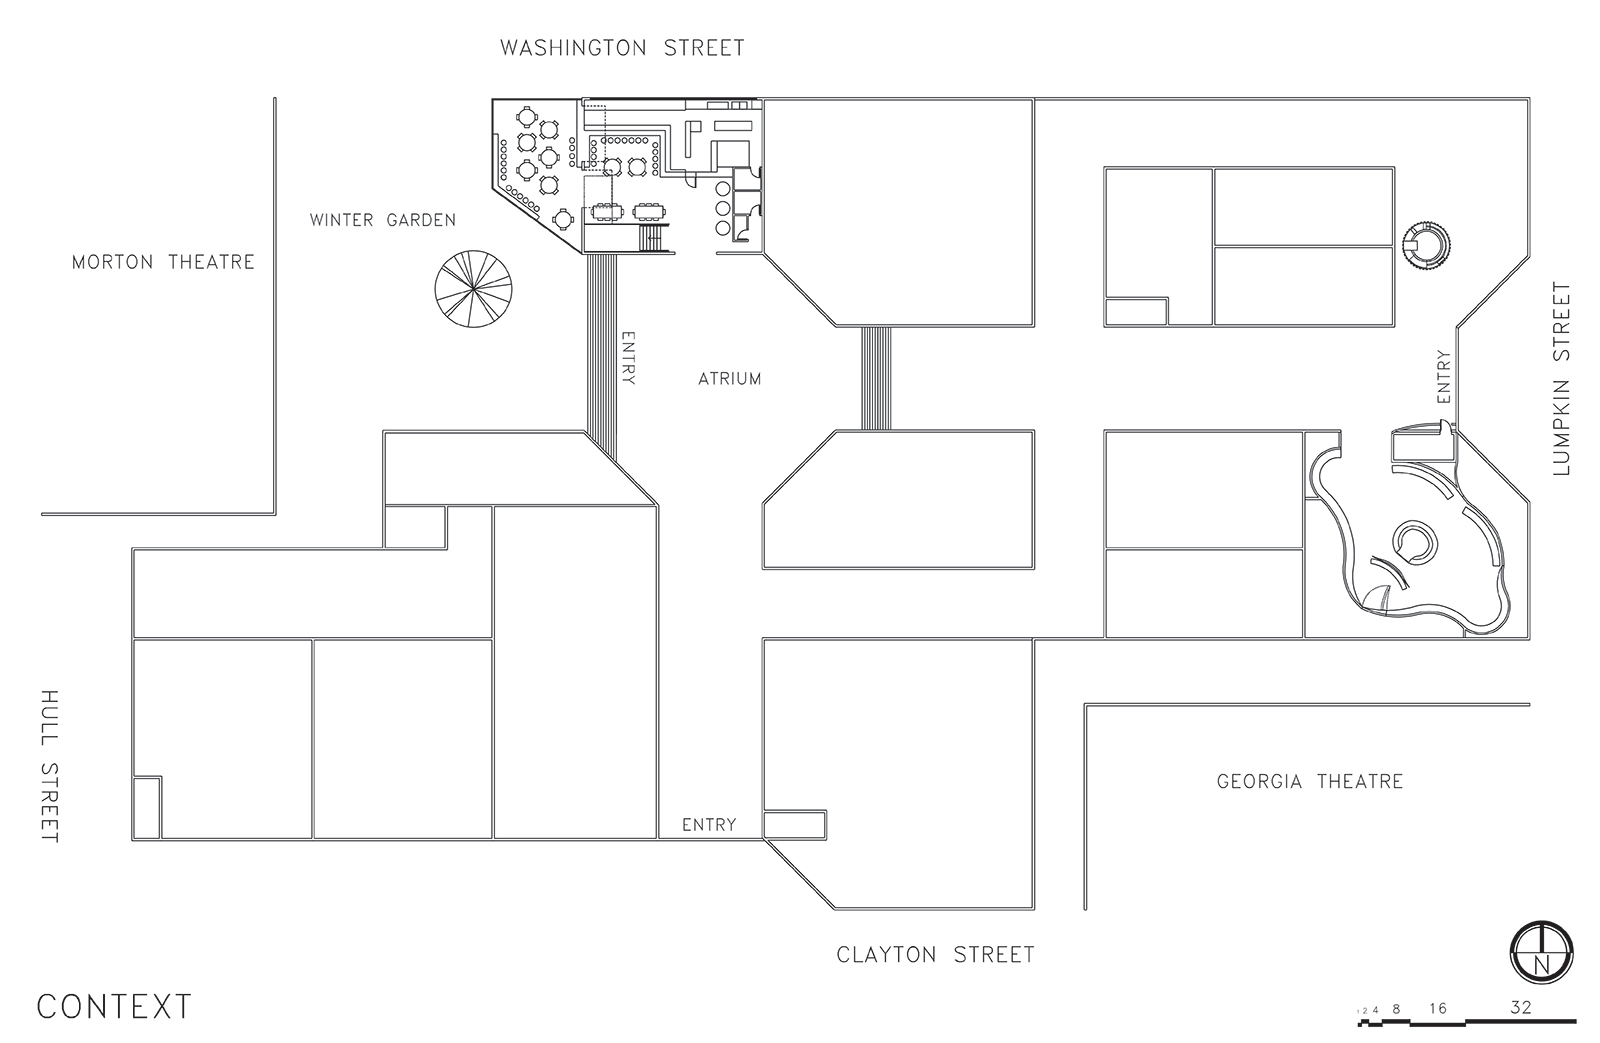 Mall_Context_FloorPlan